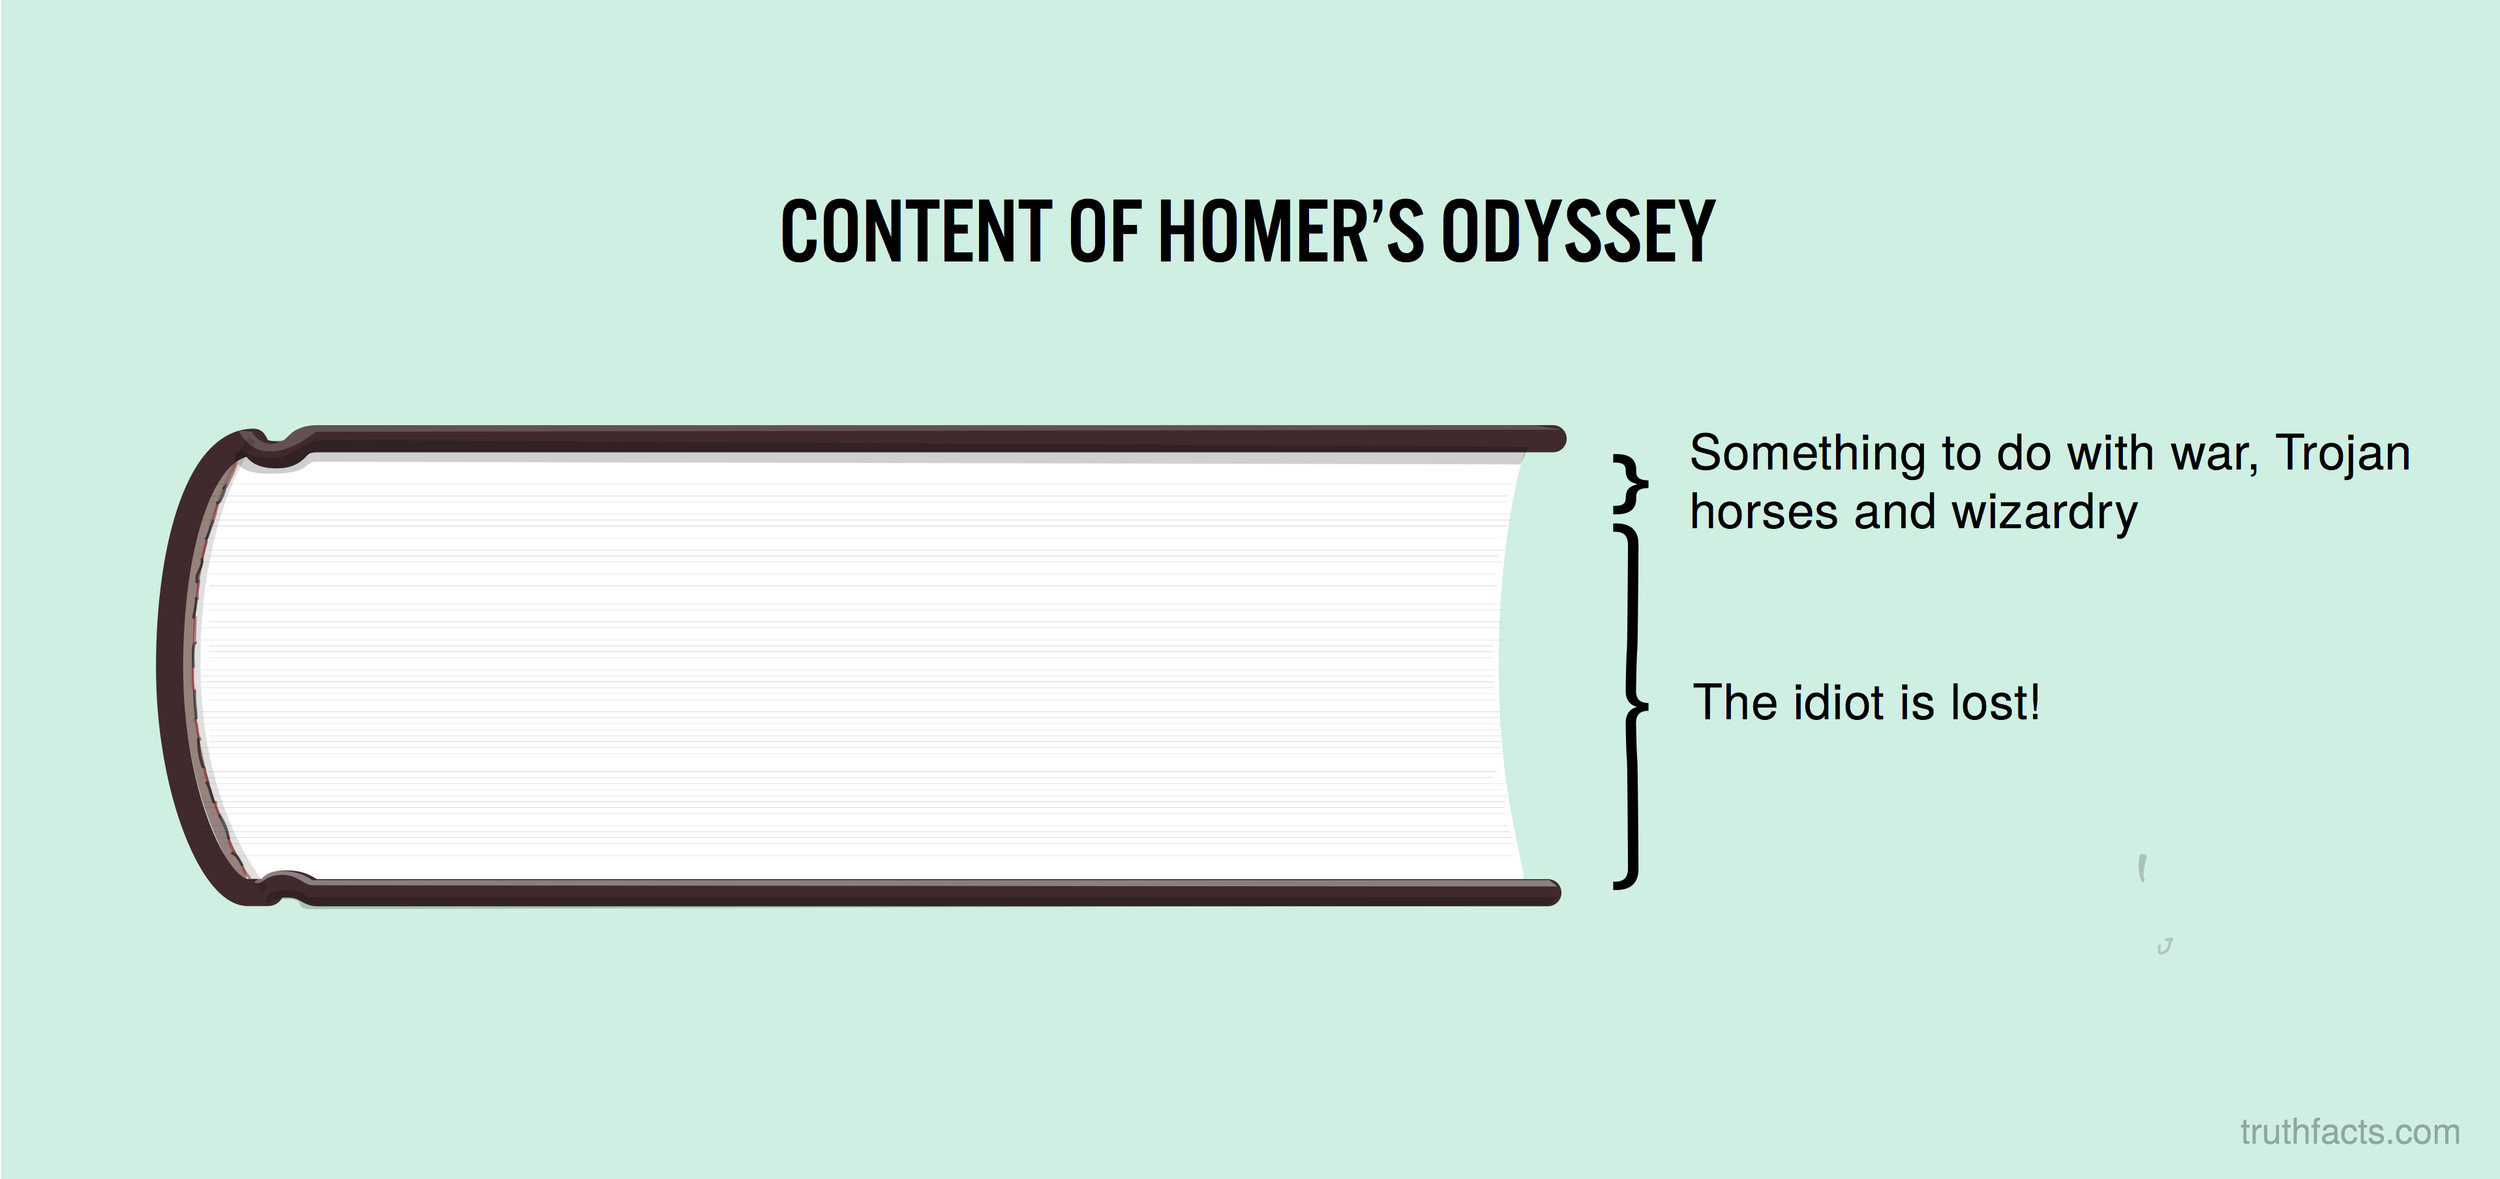 Content of Homer's Odyssey